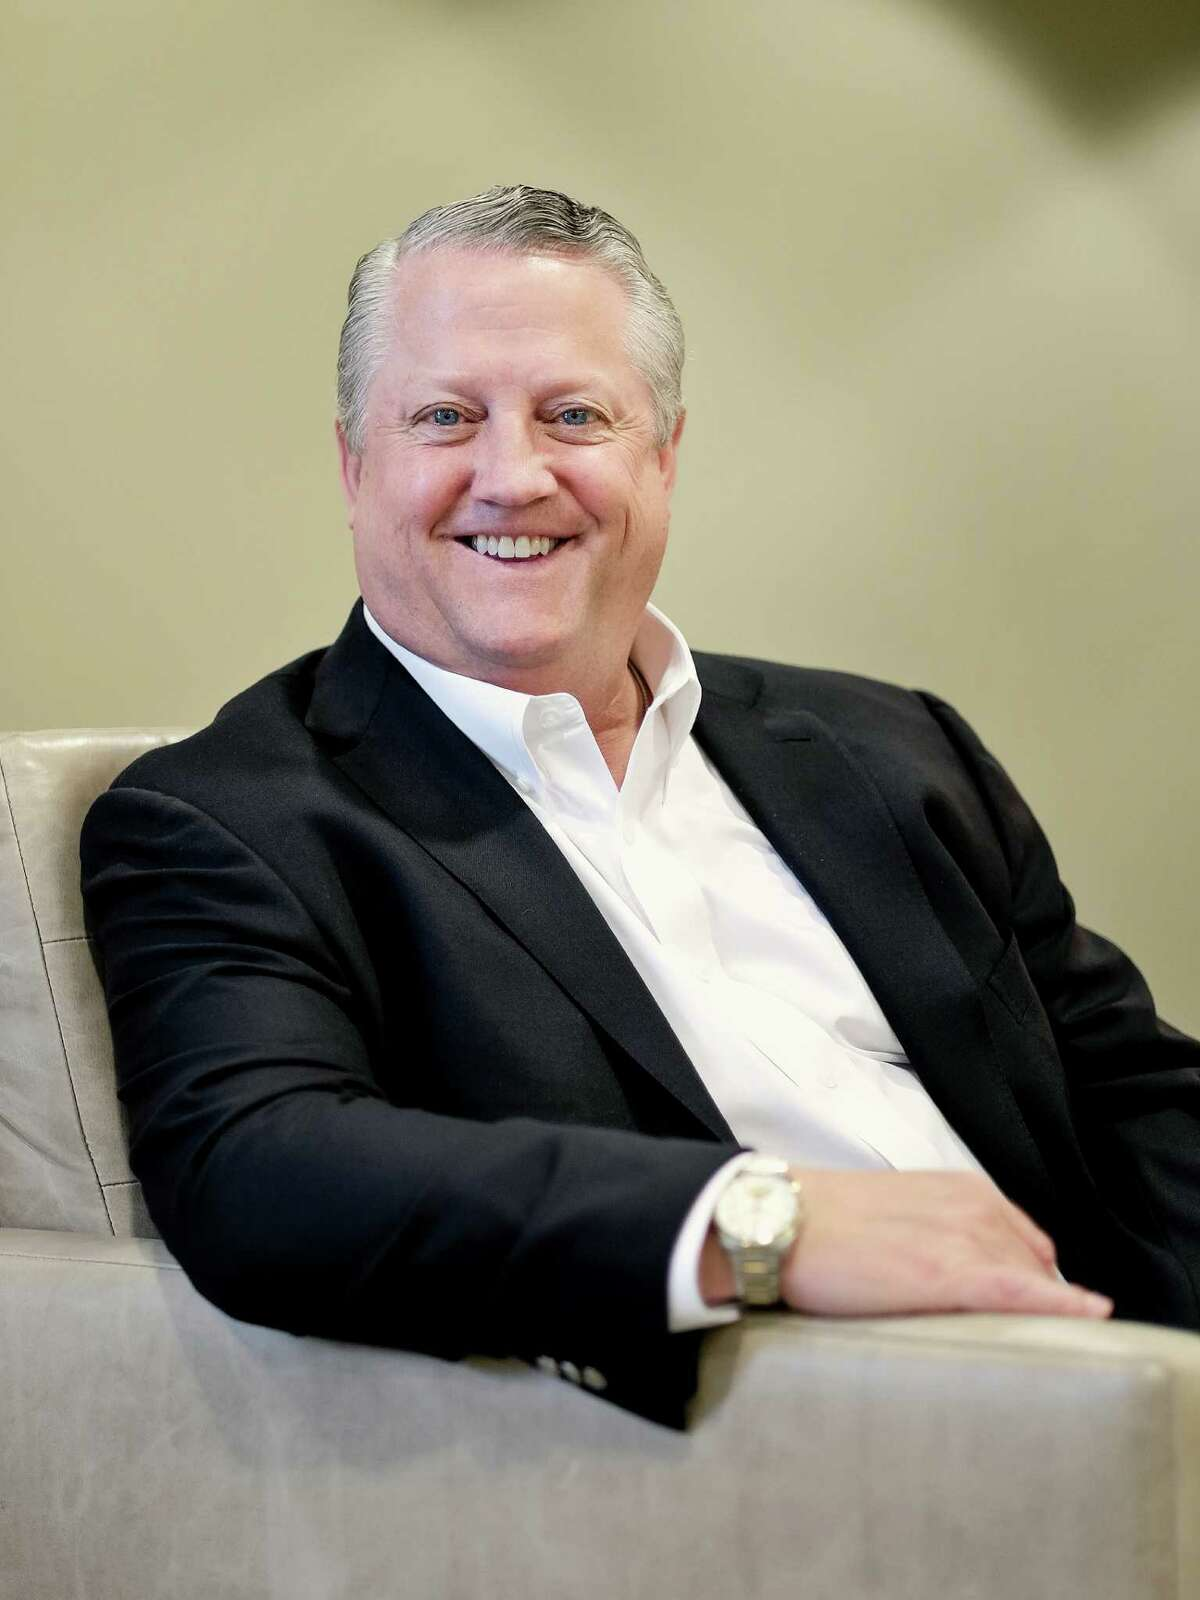 Oasis Petroleum CEO, Tommy Nusz, poses for a portrait, Thursday, June 5, 2014 at the Oasis Petroleum offices in downtown Houston,Texas. Â TODD SPOTH